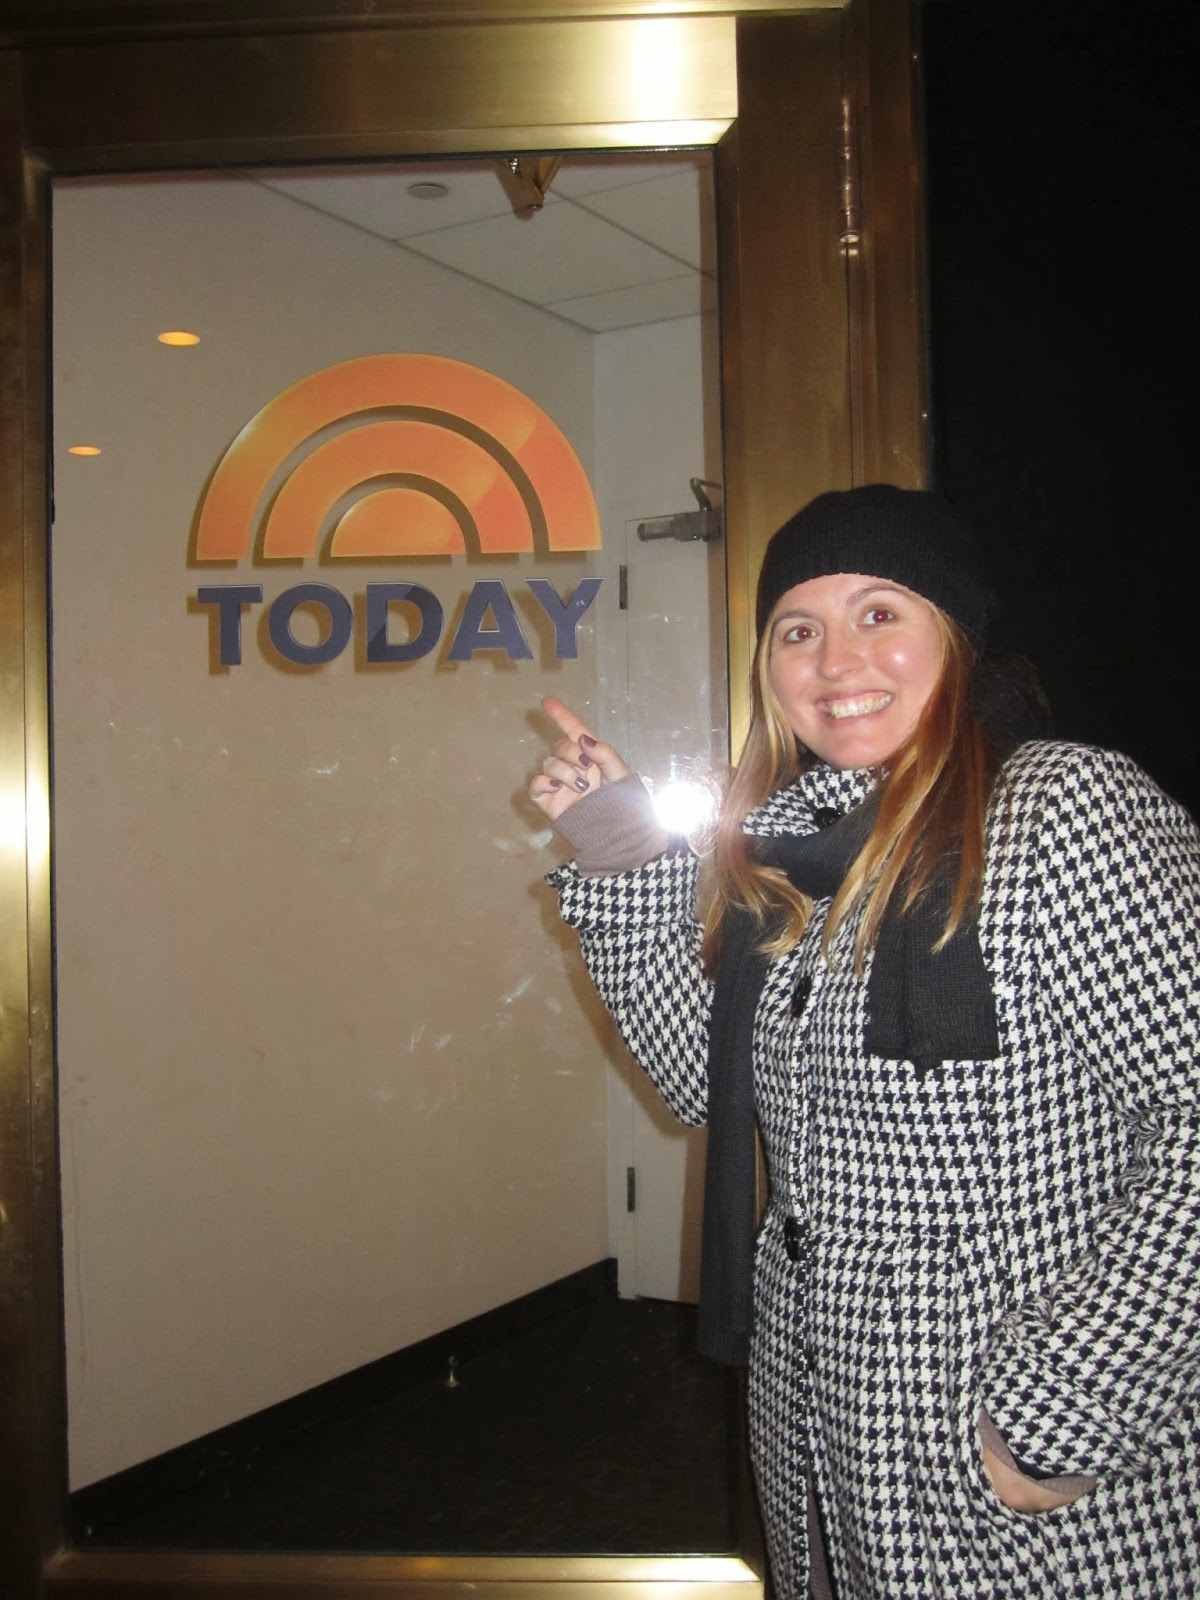 today show, new york city, woman smiling